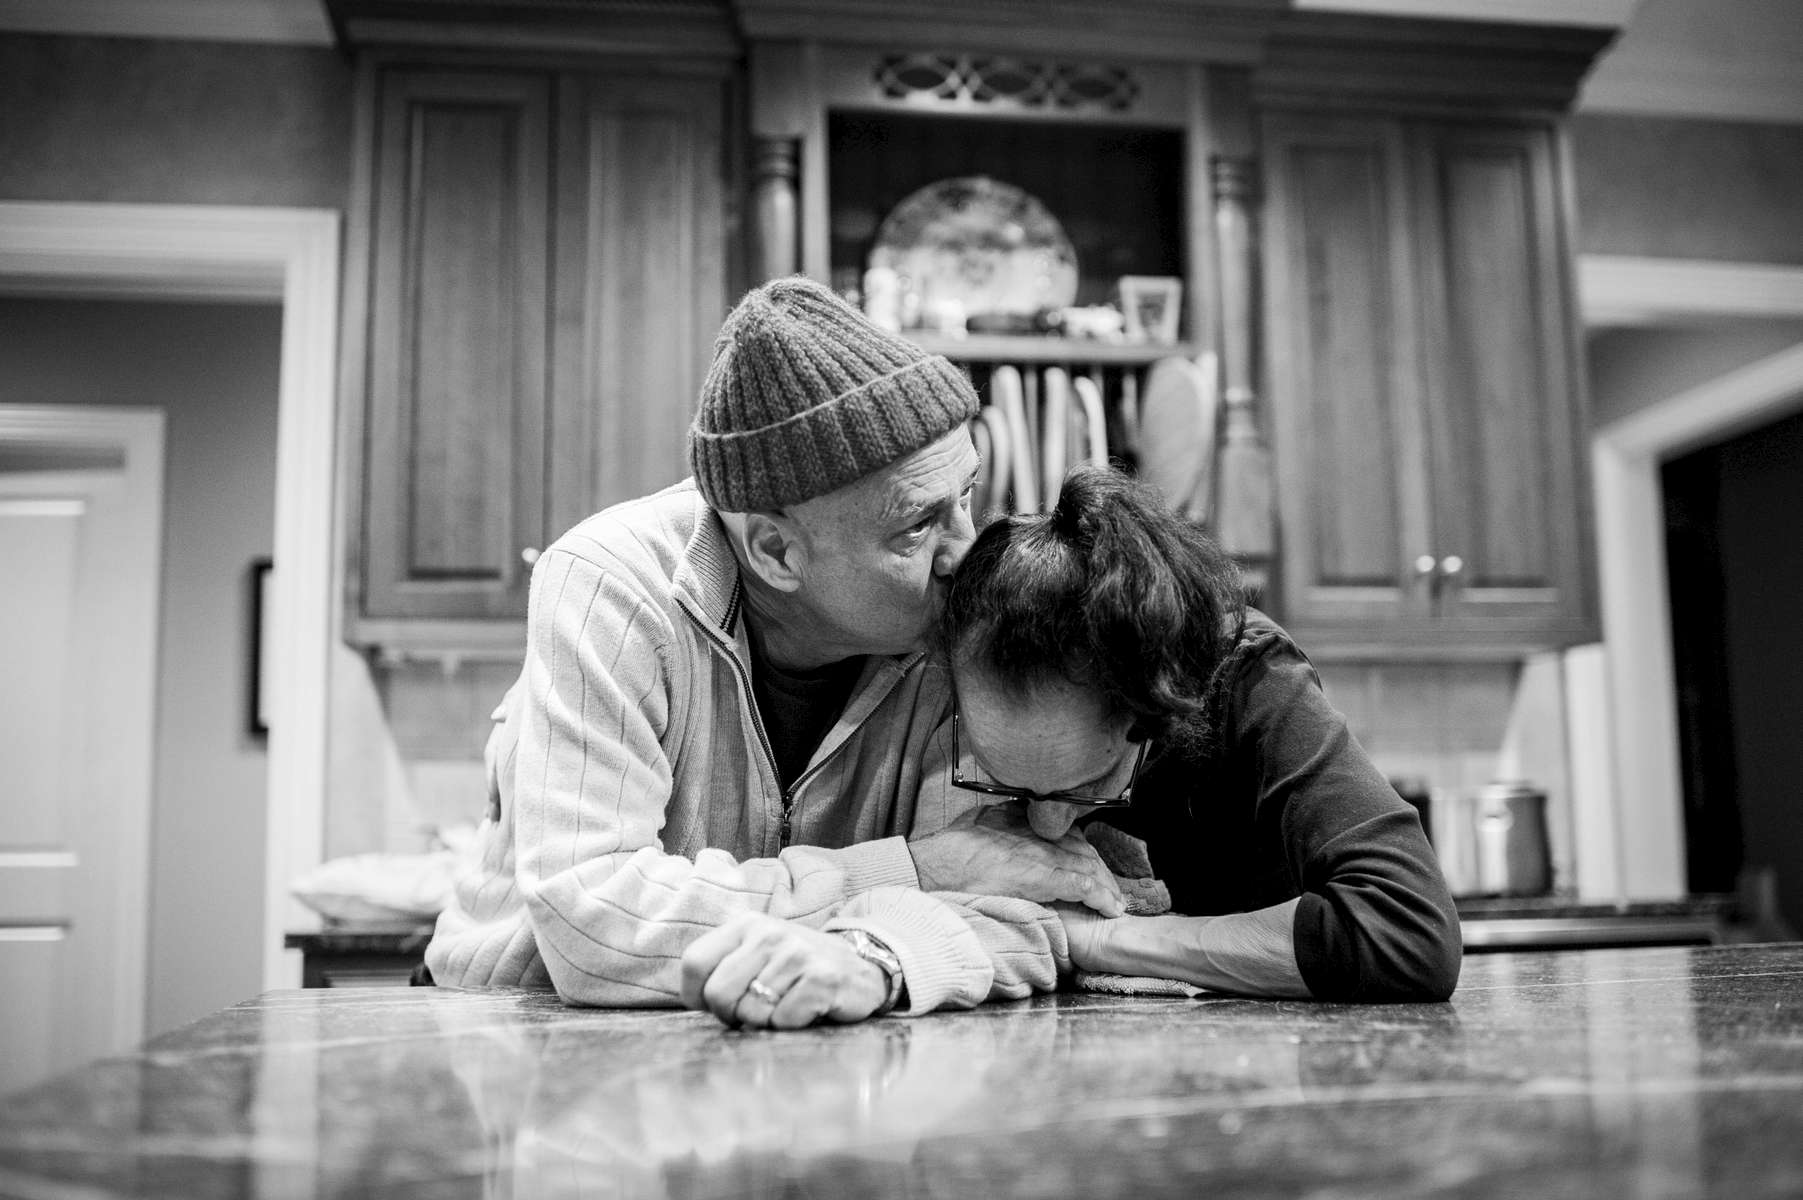 Howie and Laurel share a quiet moment alone in the kitchen after a long day of treatment. No longer working, their daily activities revolve around doctors appointments. Chappaqua, New York. January, 2013